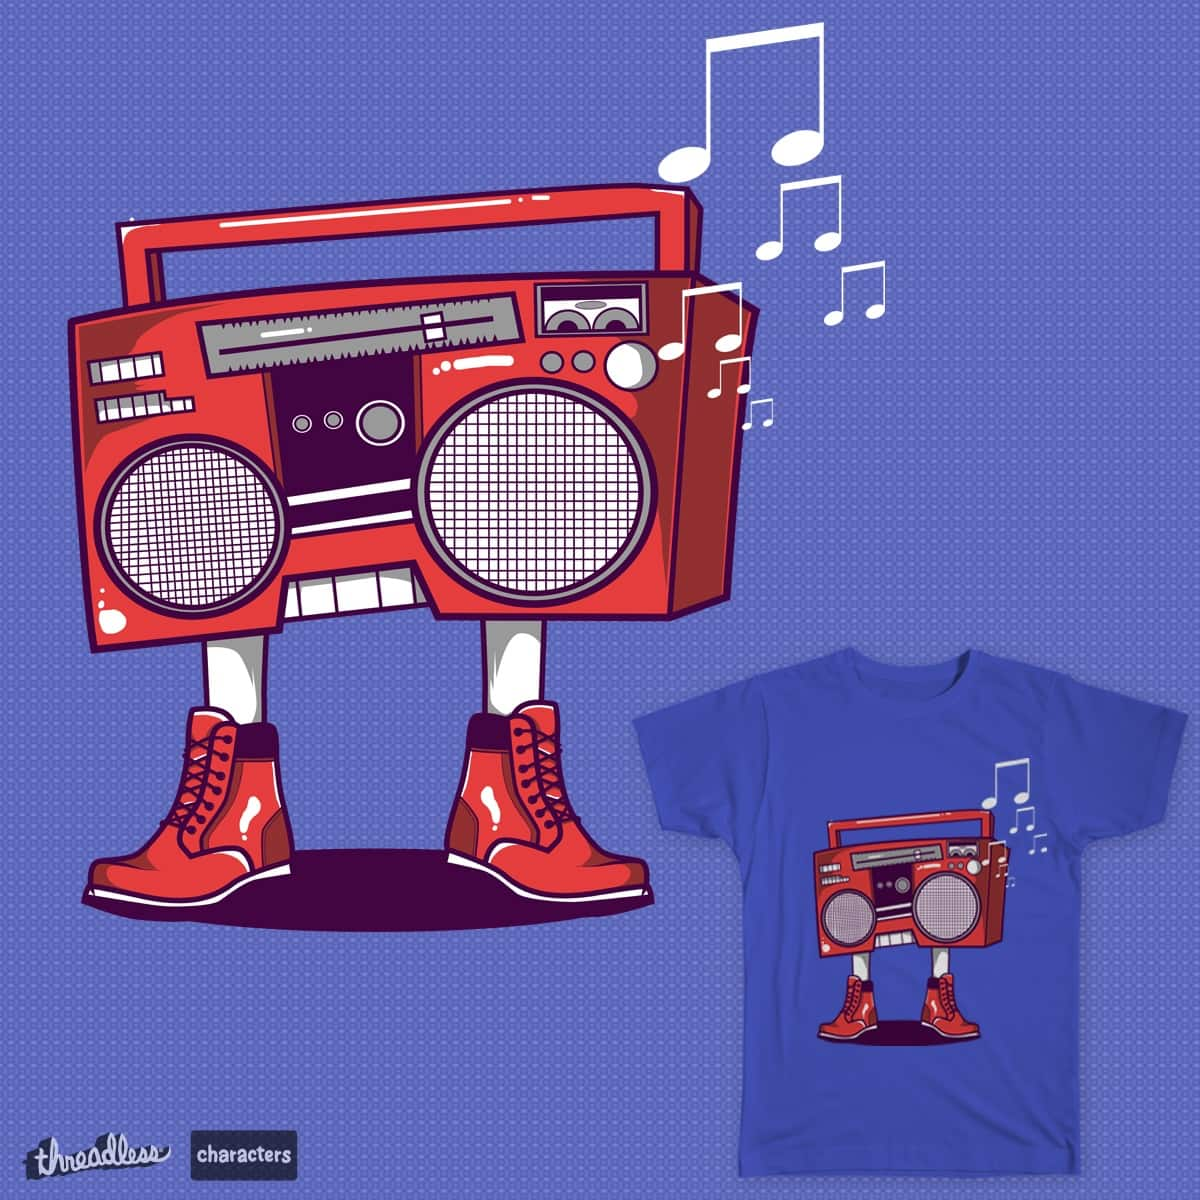 BoomBoot by benedictlarazo on Threadless